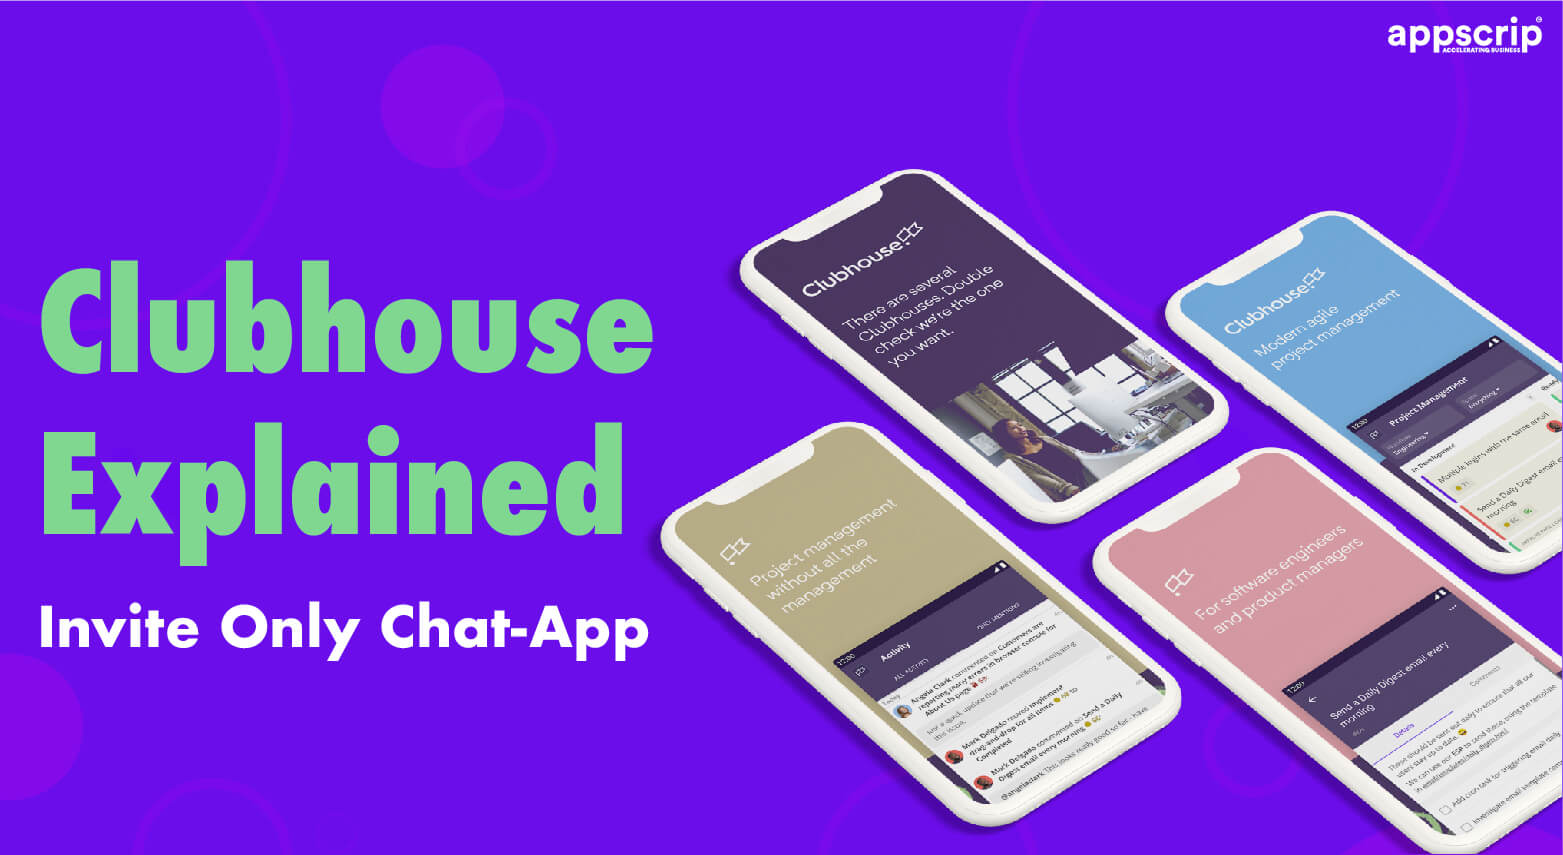 clubhouse clone Clubhouse Clone, Build An Audio-Based Social Media App